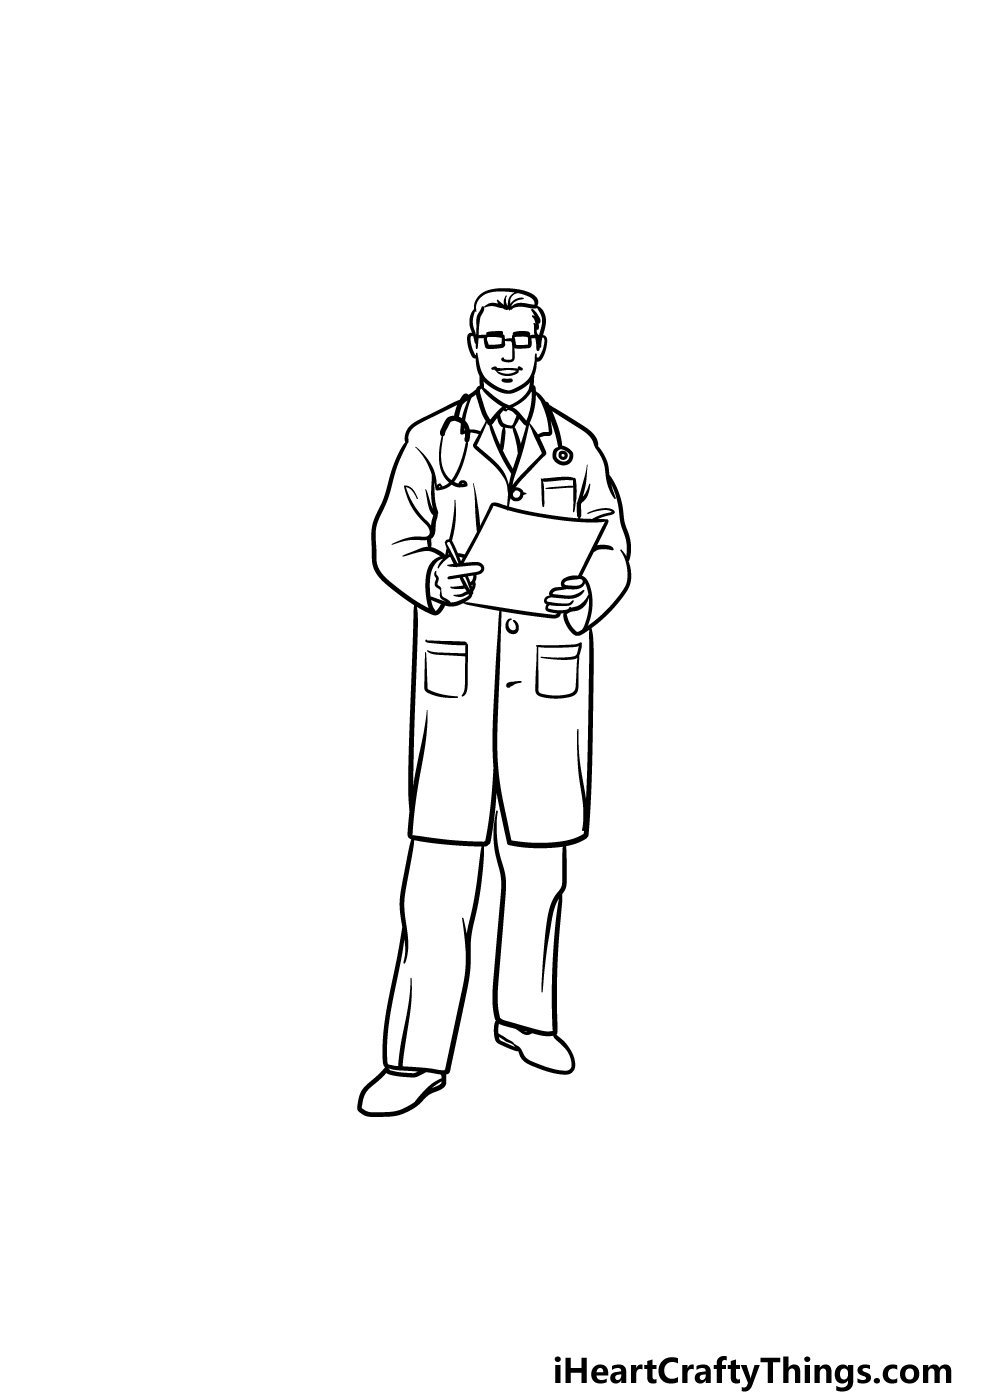 drawing a doctor step 5